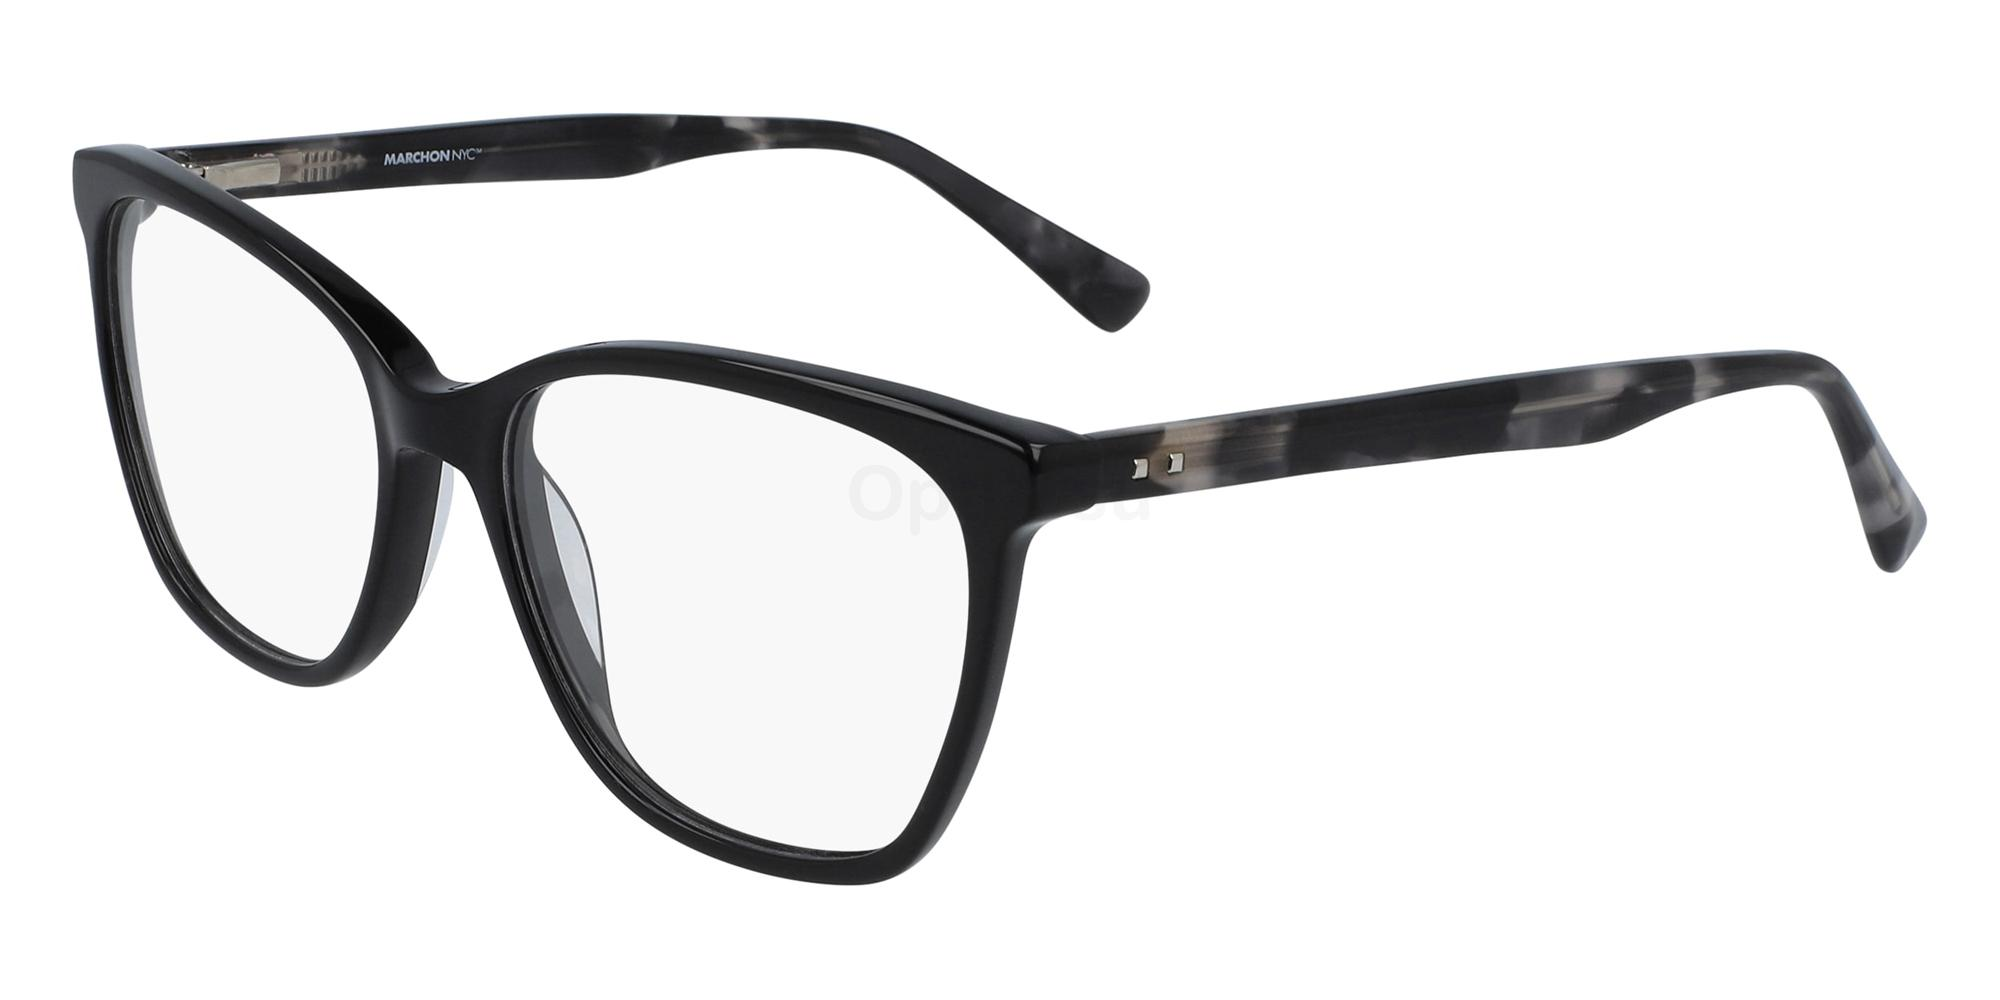 001 M-5504 Glasses, Marchon